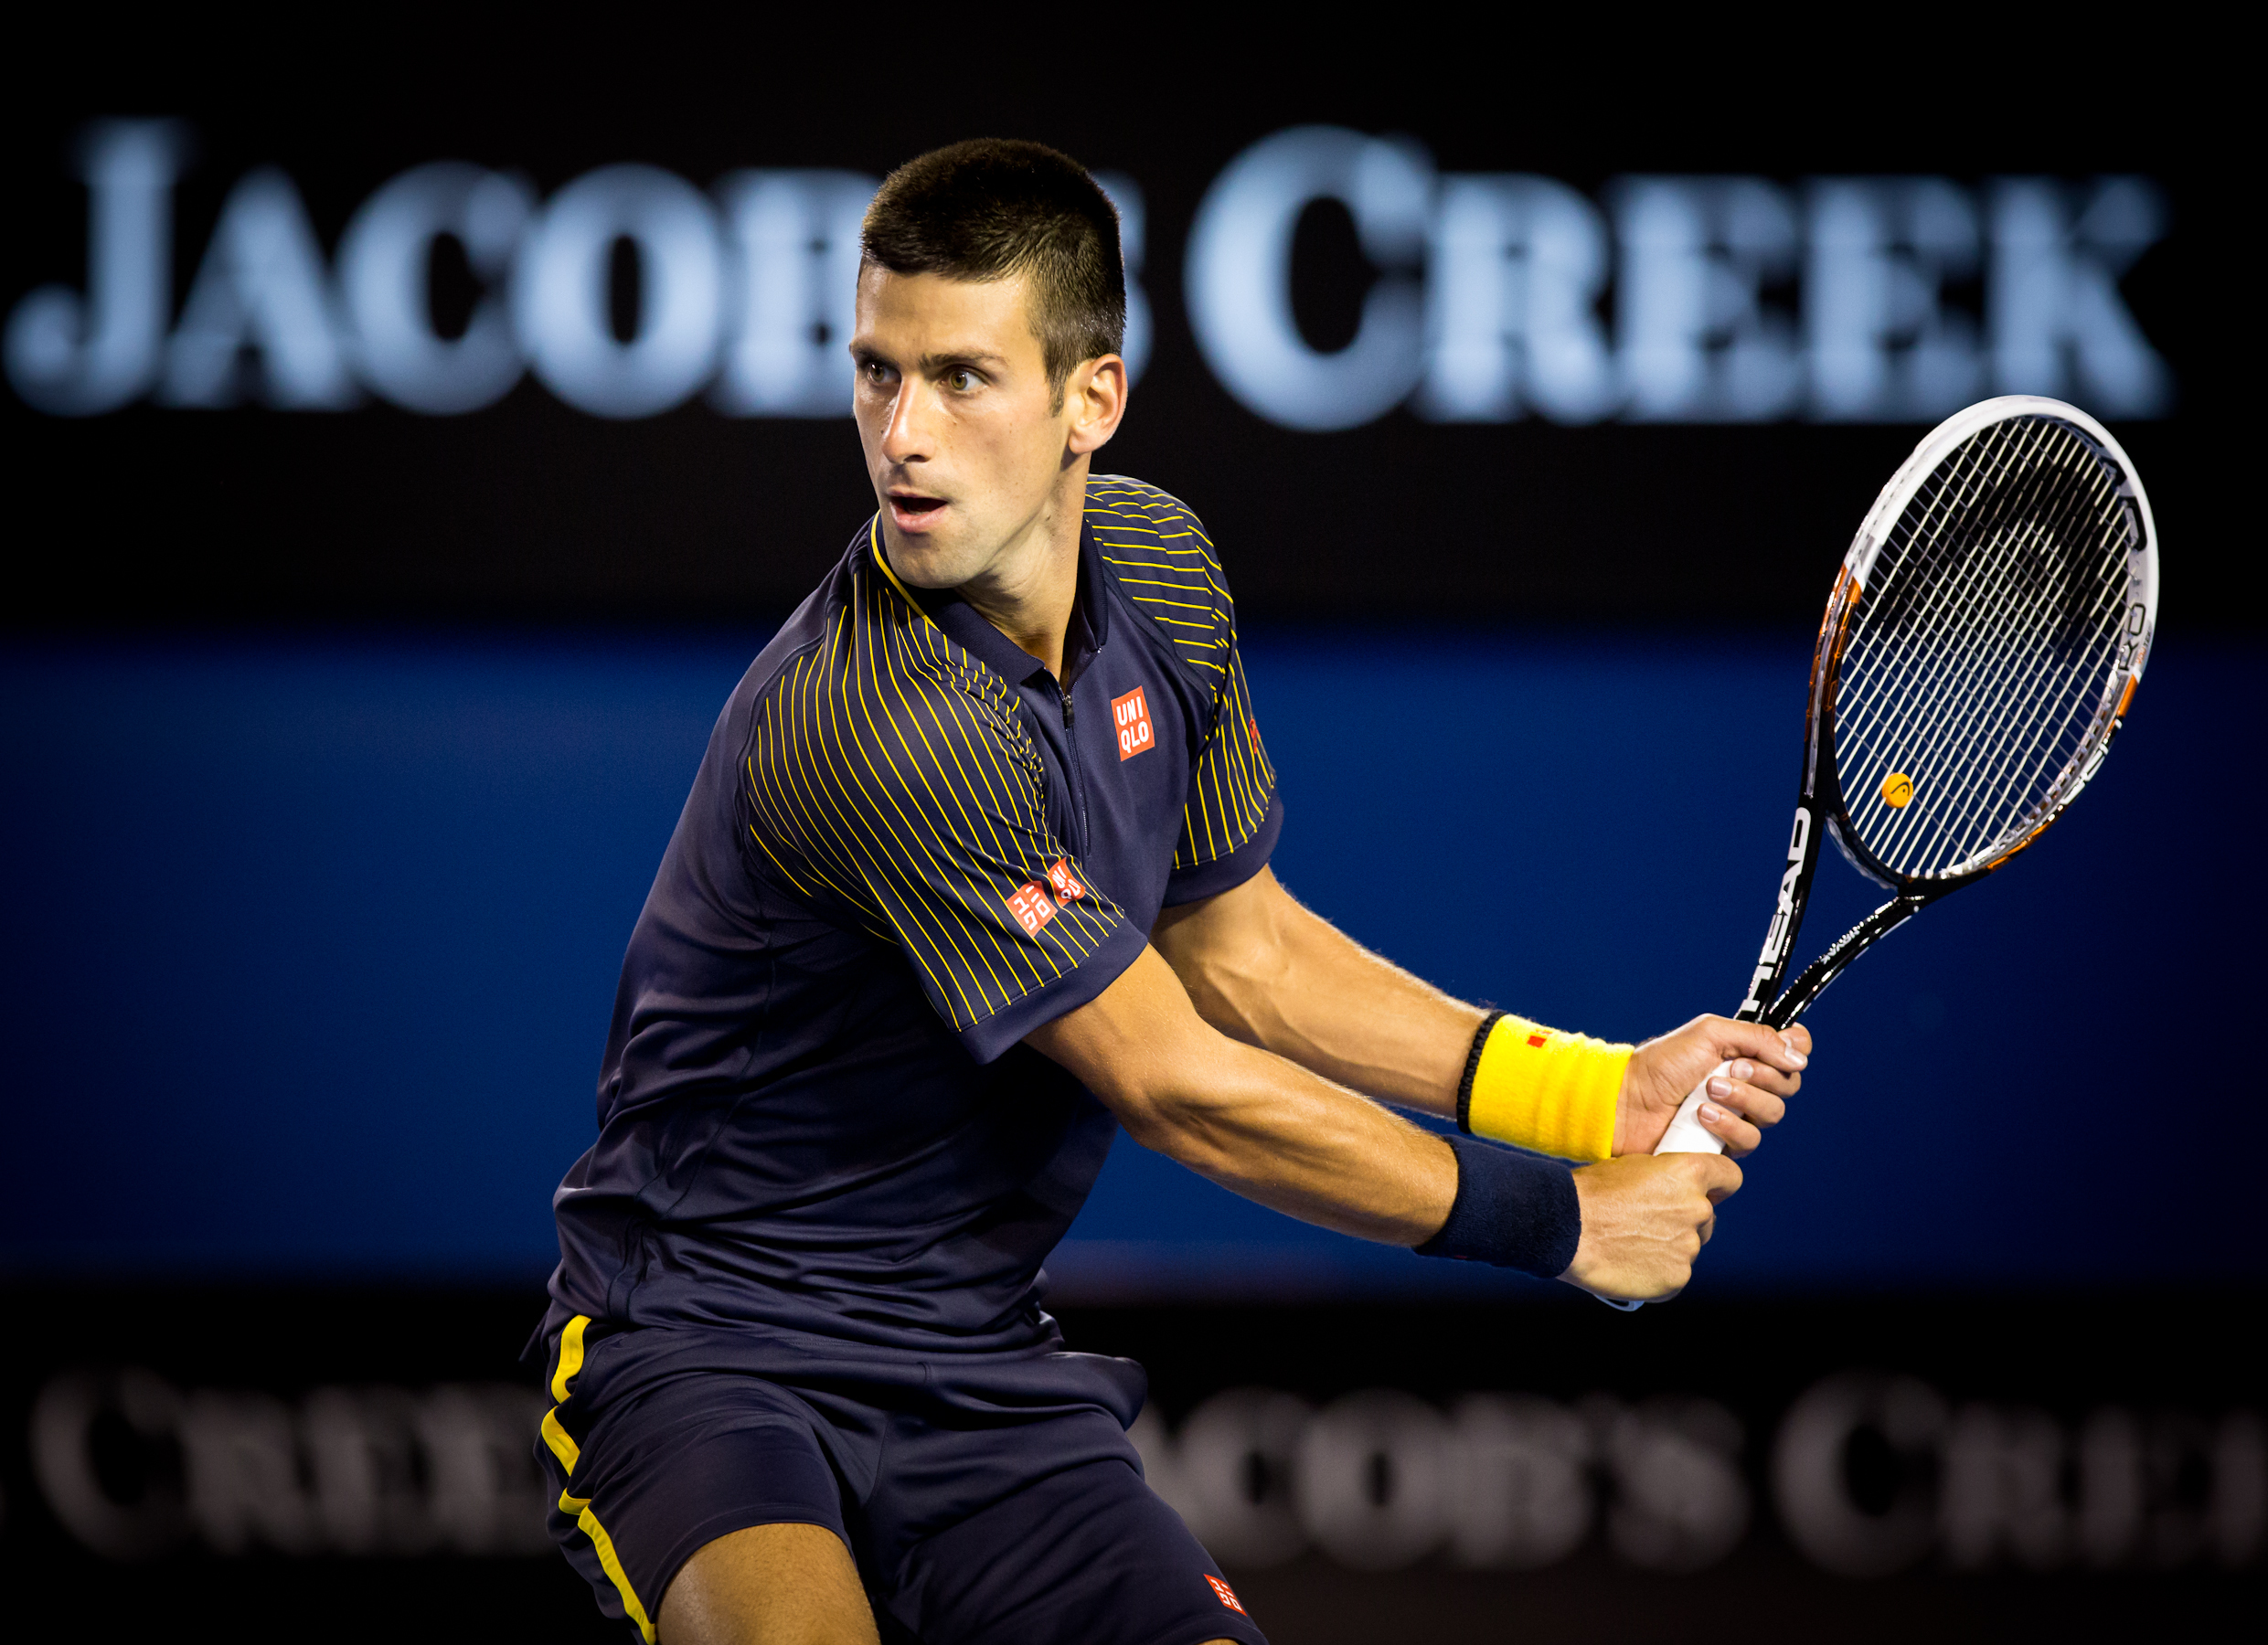 djokovic - photo #22